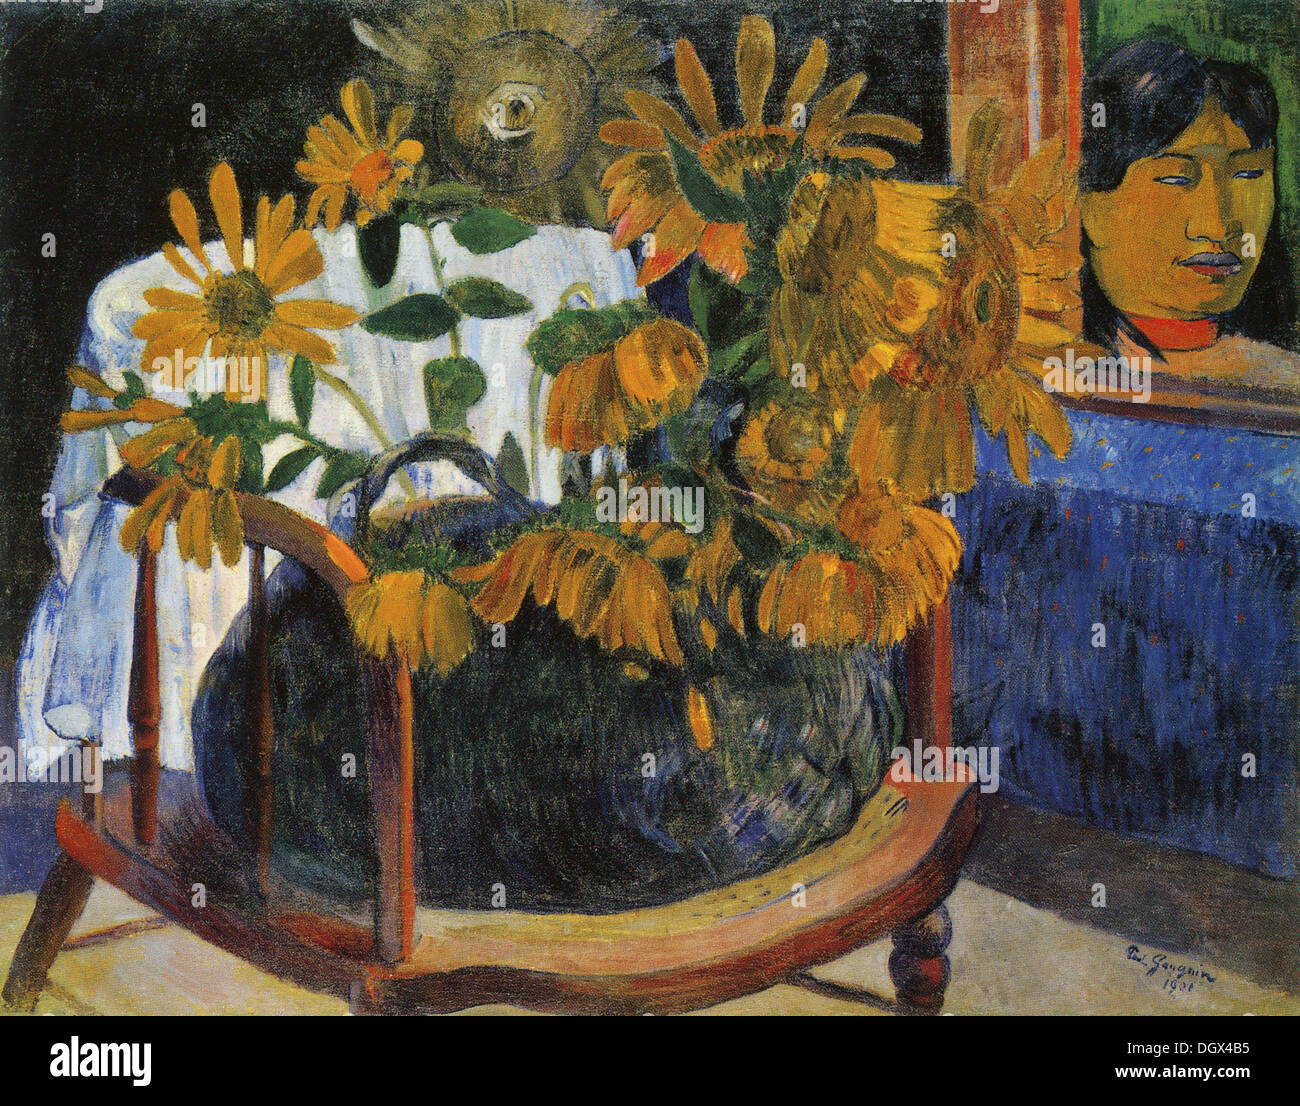 Sunflowers - by Paul Gauguin, 1901 - Stock Image